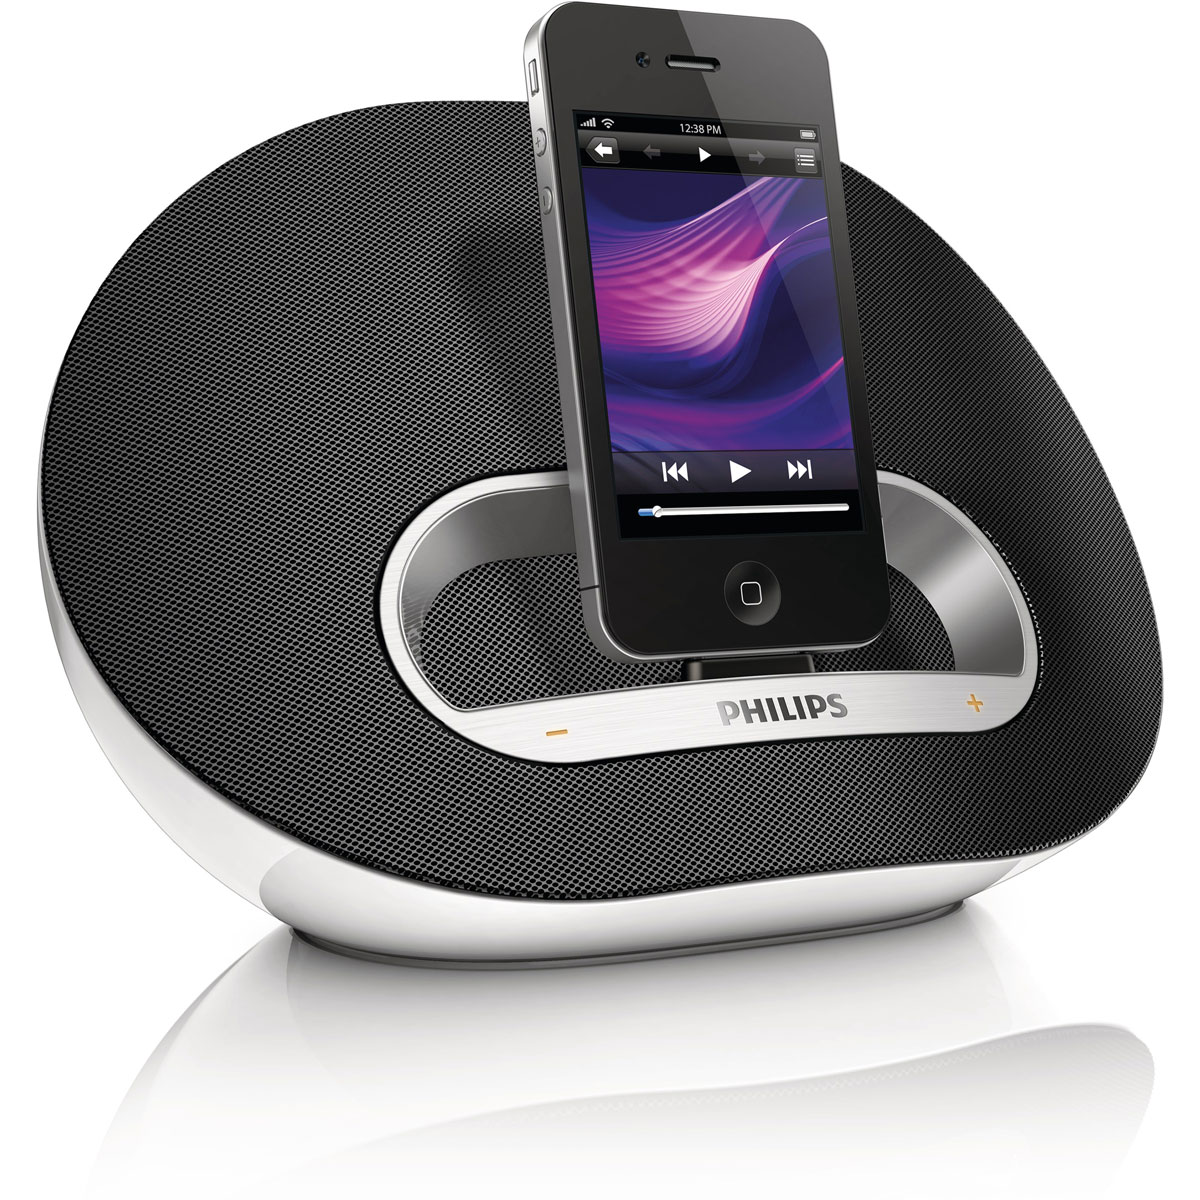 philips ds3100 dock enceinte bluetooth philips sur. Black Bedroom Furniture Sets. Home Design Ideas